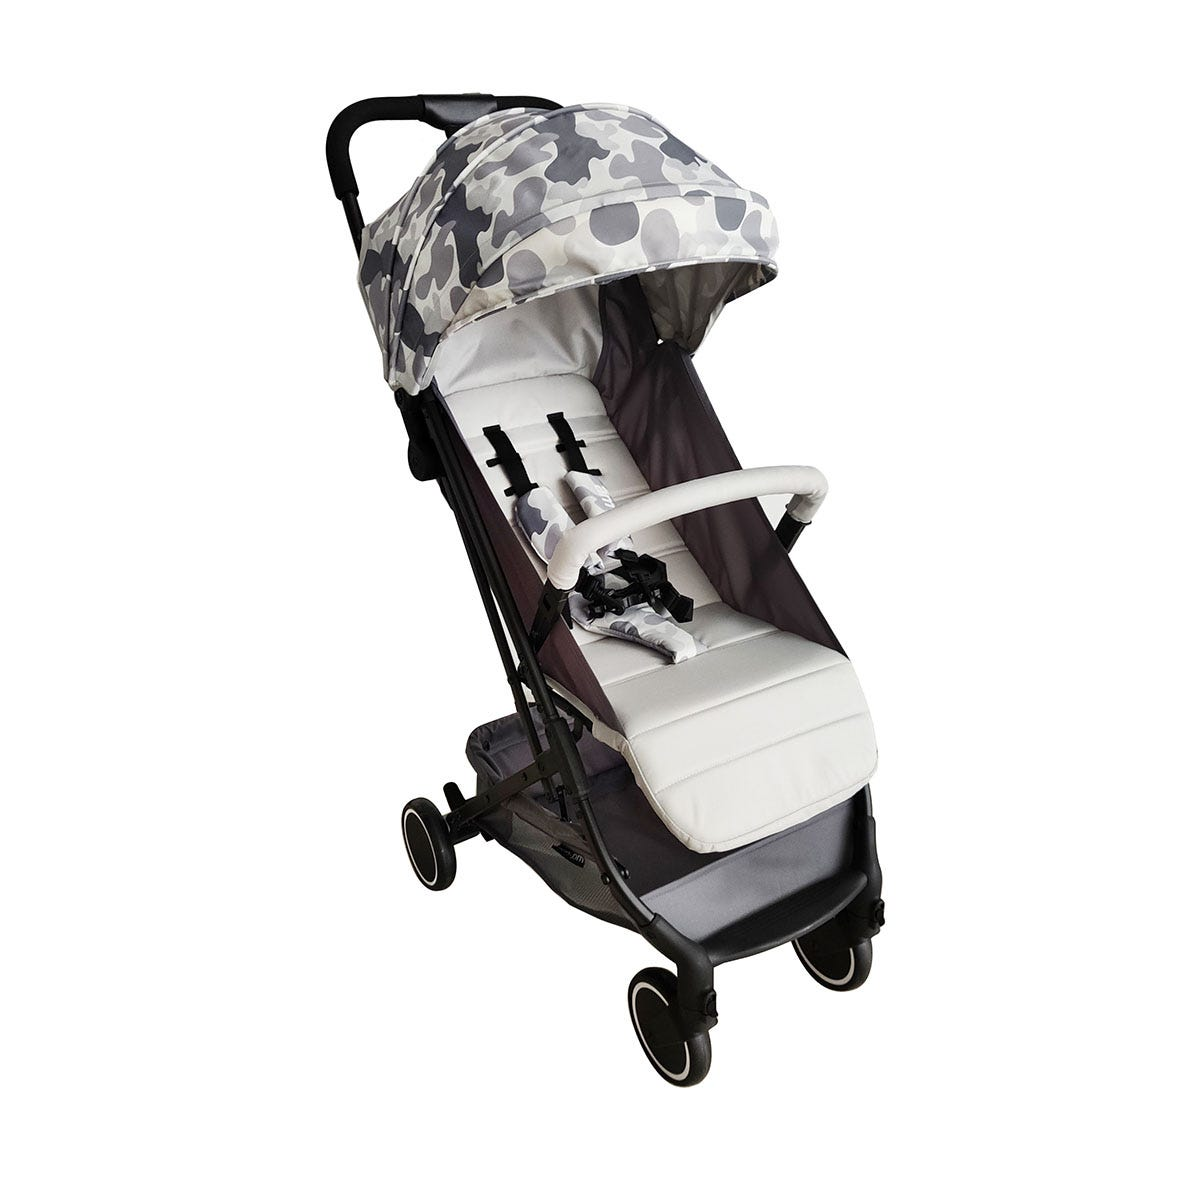 My Babiie AM to PM Christina Milian MBX1 Compact Stroller - Grey Camo